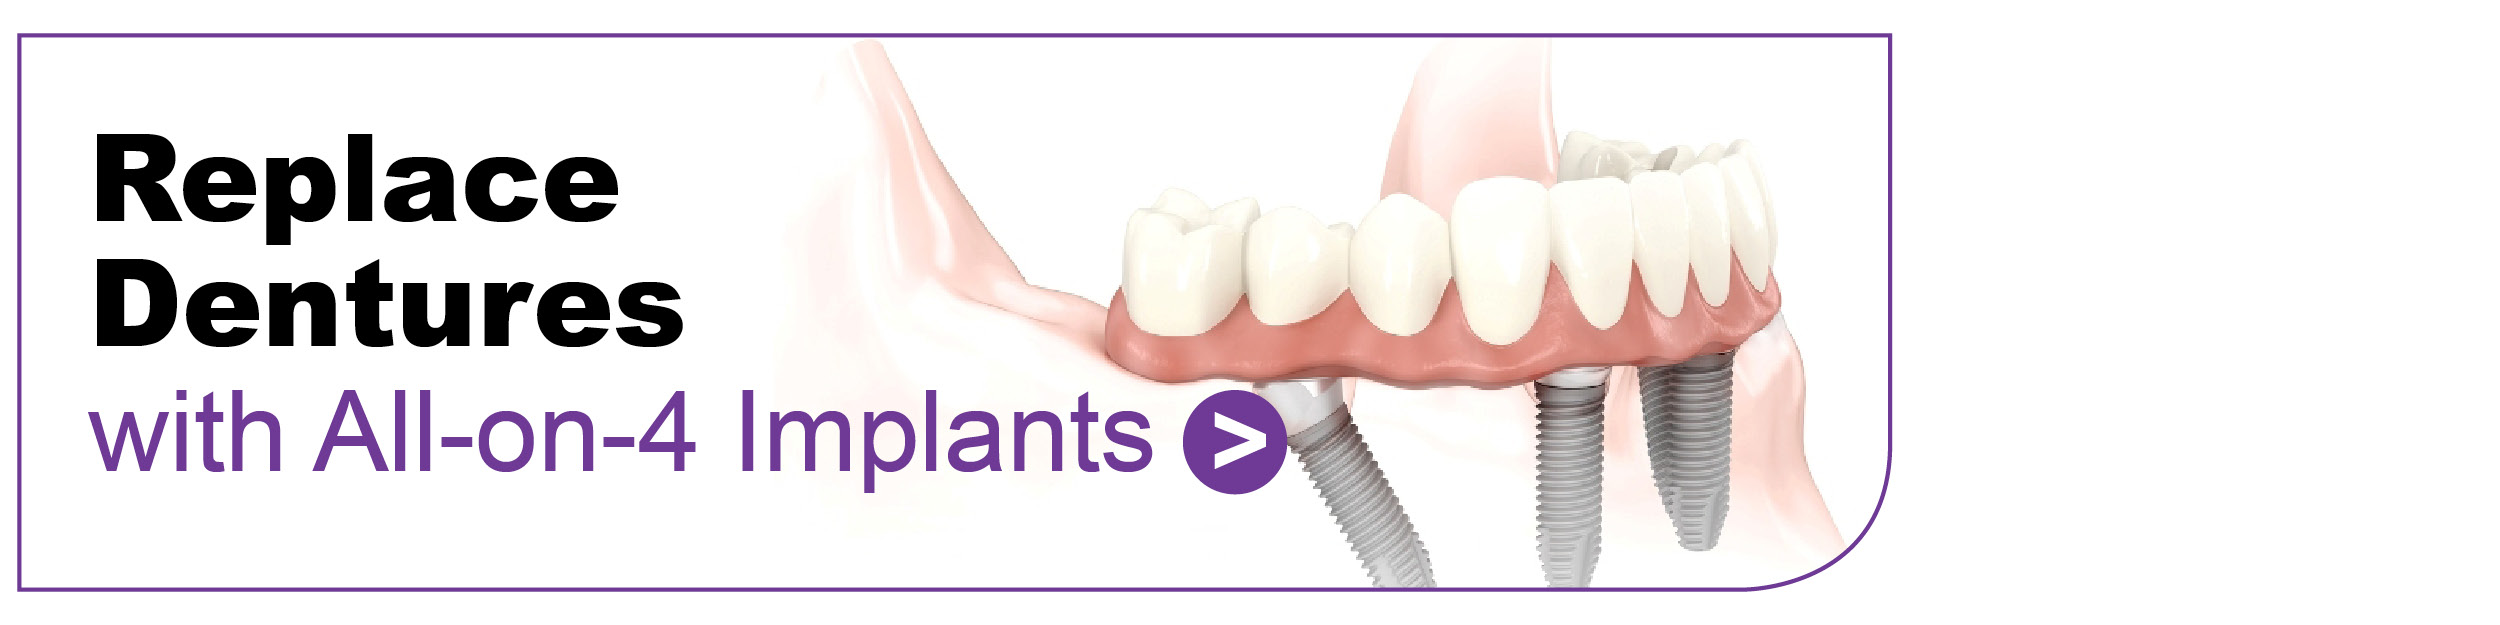 Dental Implants Hinckley